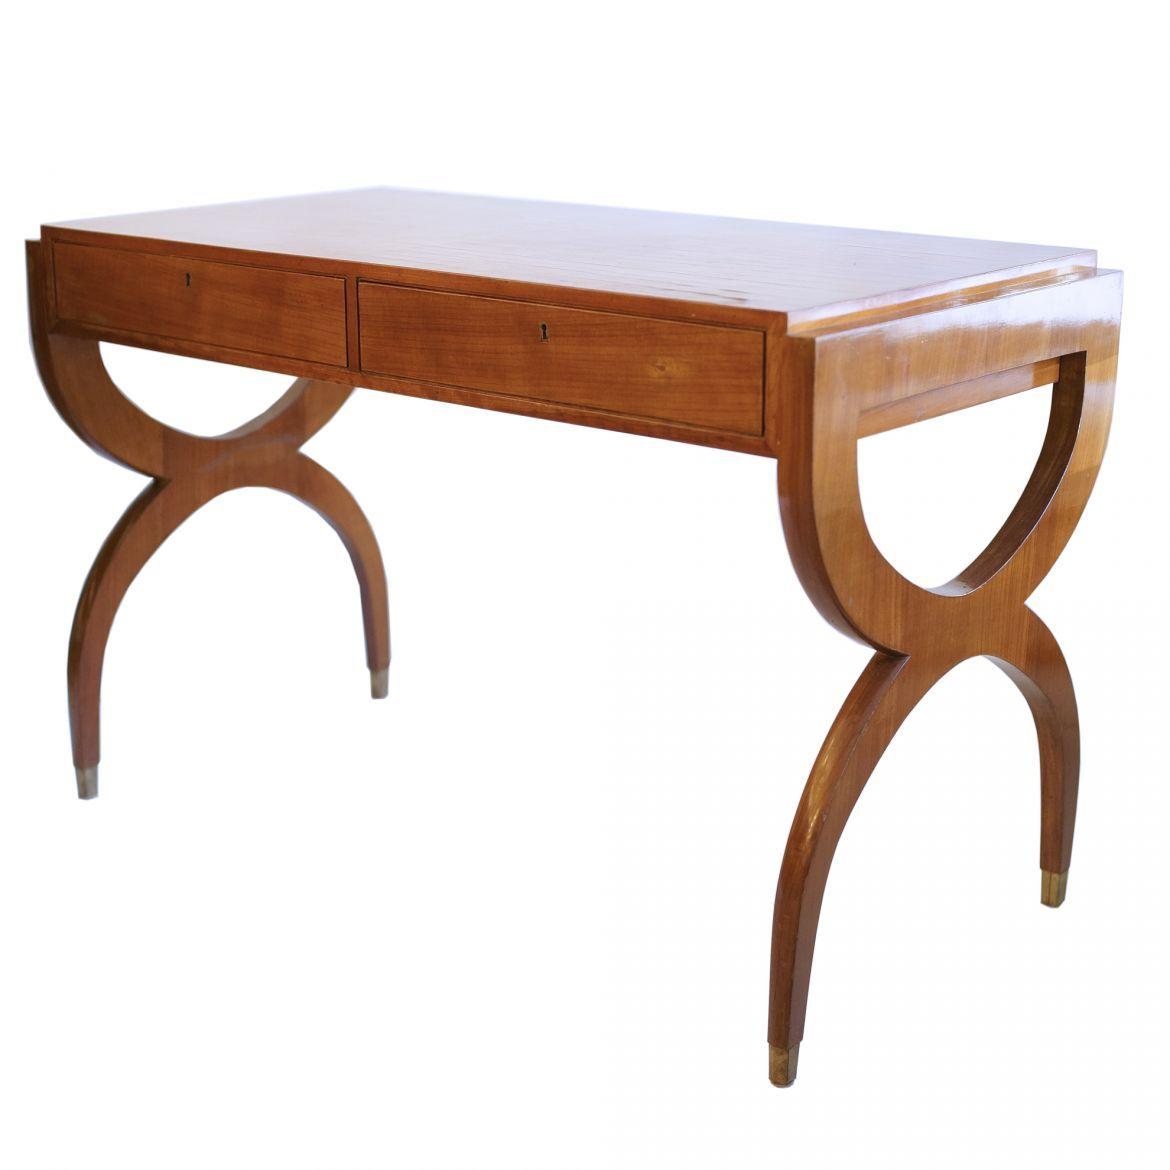 Couchtisch Beton Natura Memphis Walnut Desk With Two Drawers By Paolo Buffa The Kairos